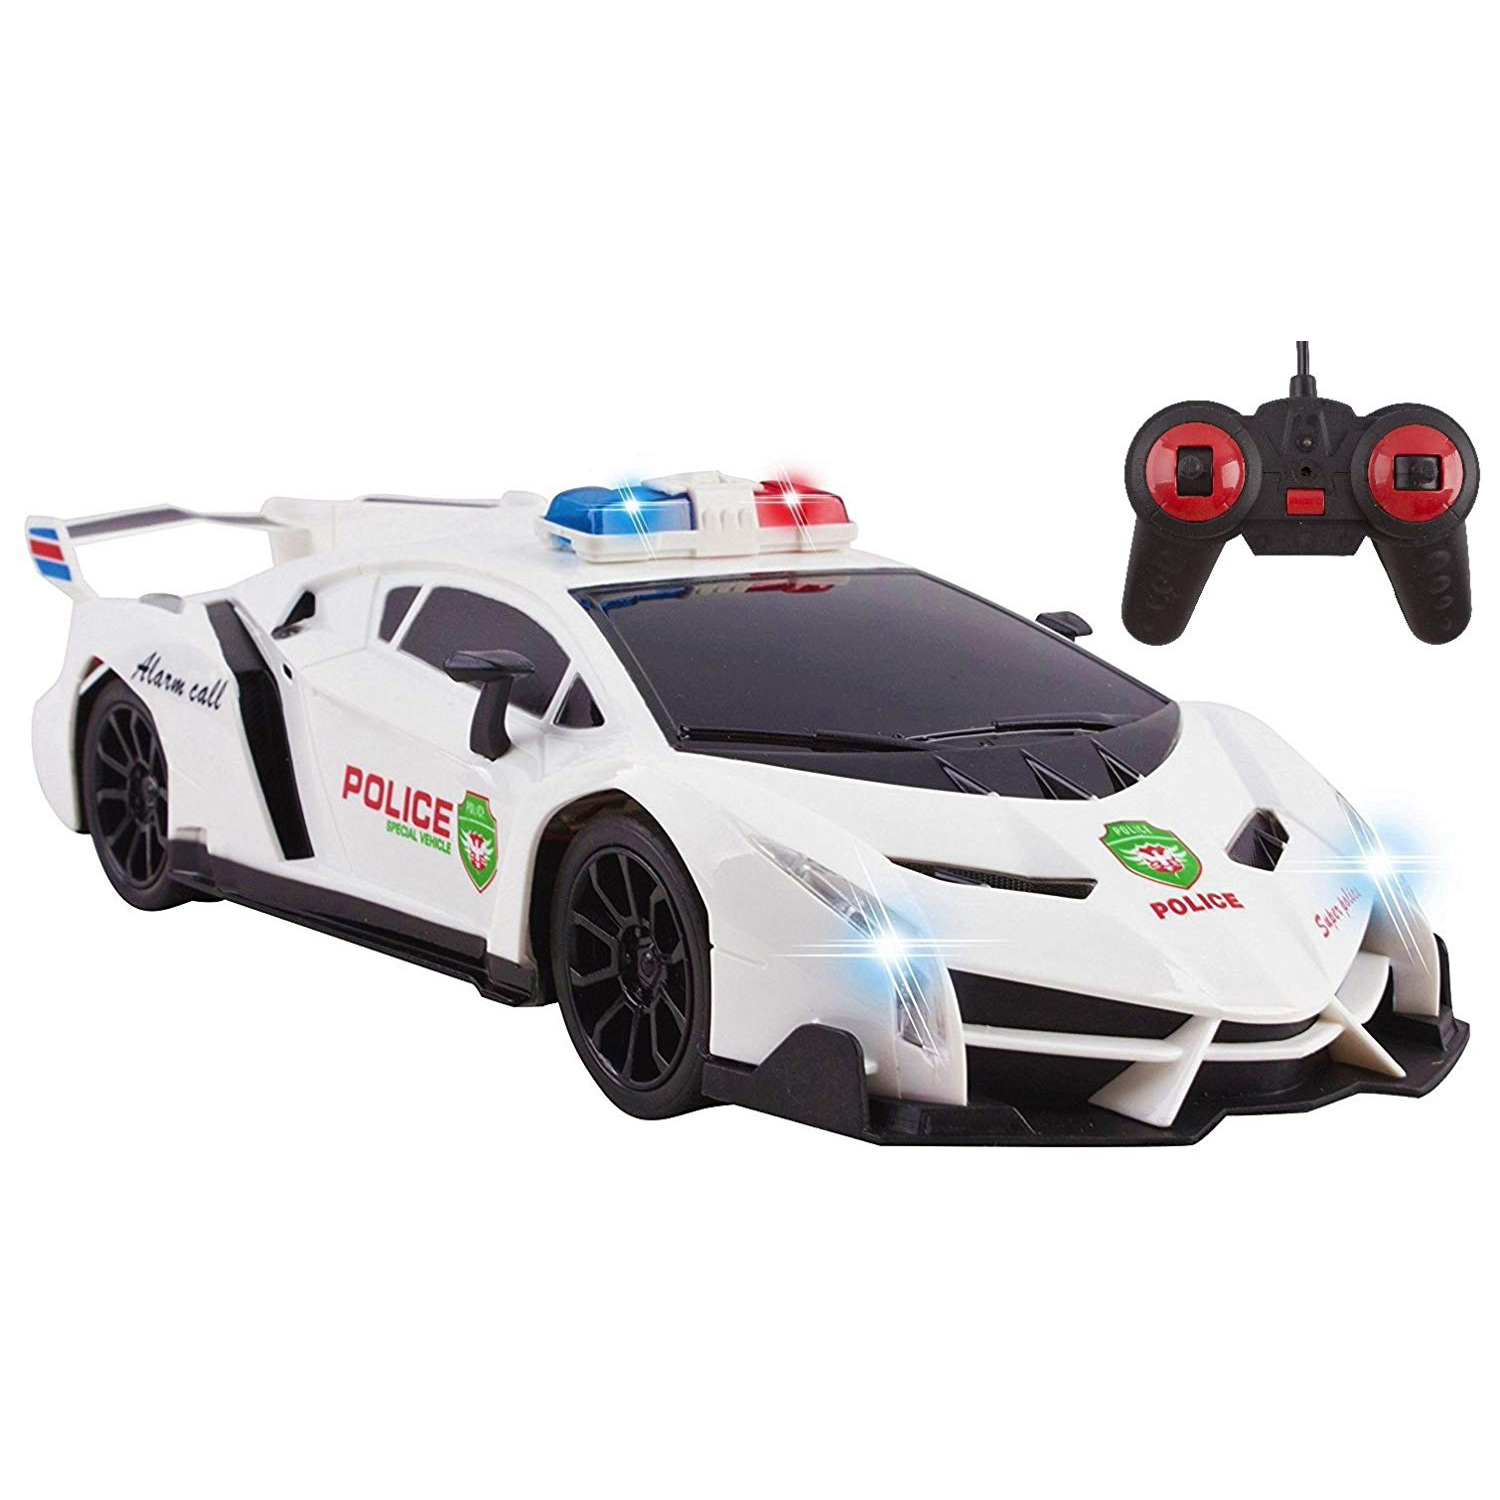 Police RC Car For Kids Super Exotic Large Remote Control Easy To Operate Toy Sports Car with Working Headlights And Sirens Perfect Cop Race Vehicle (White)